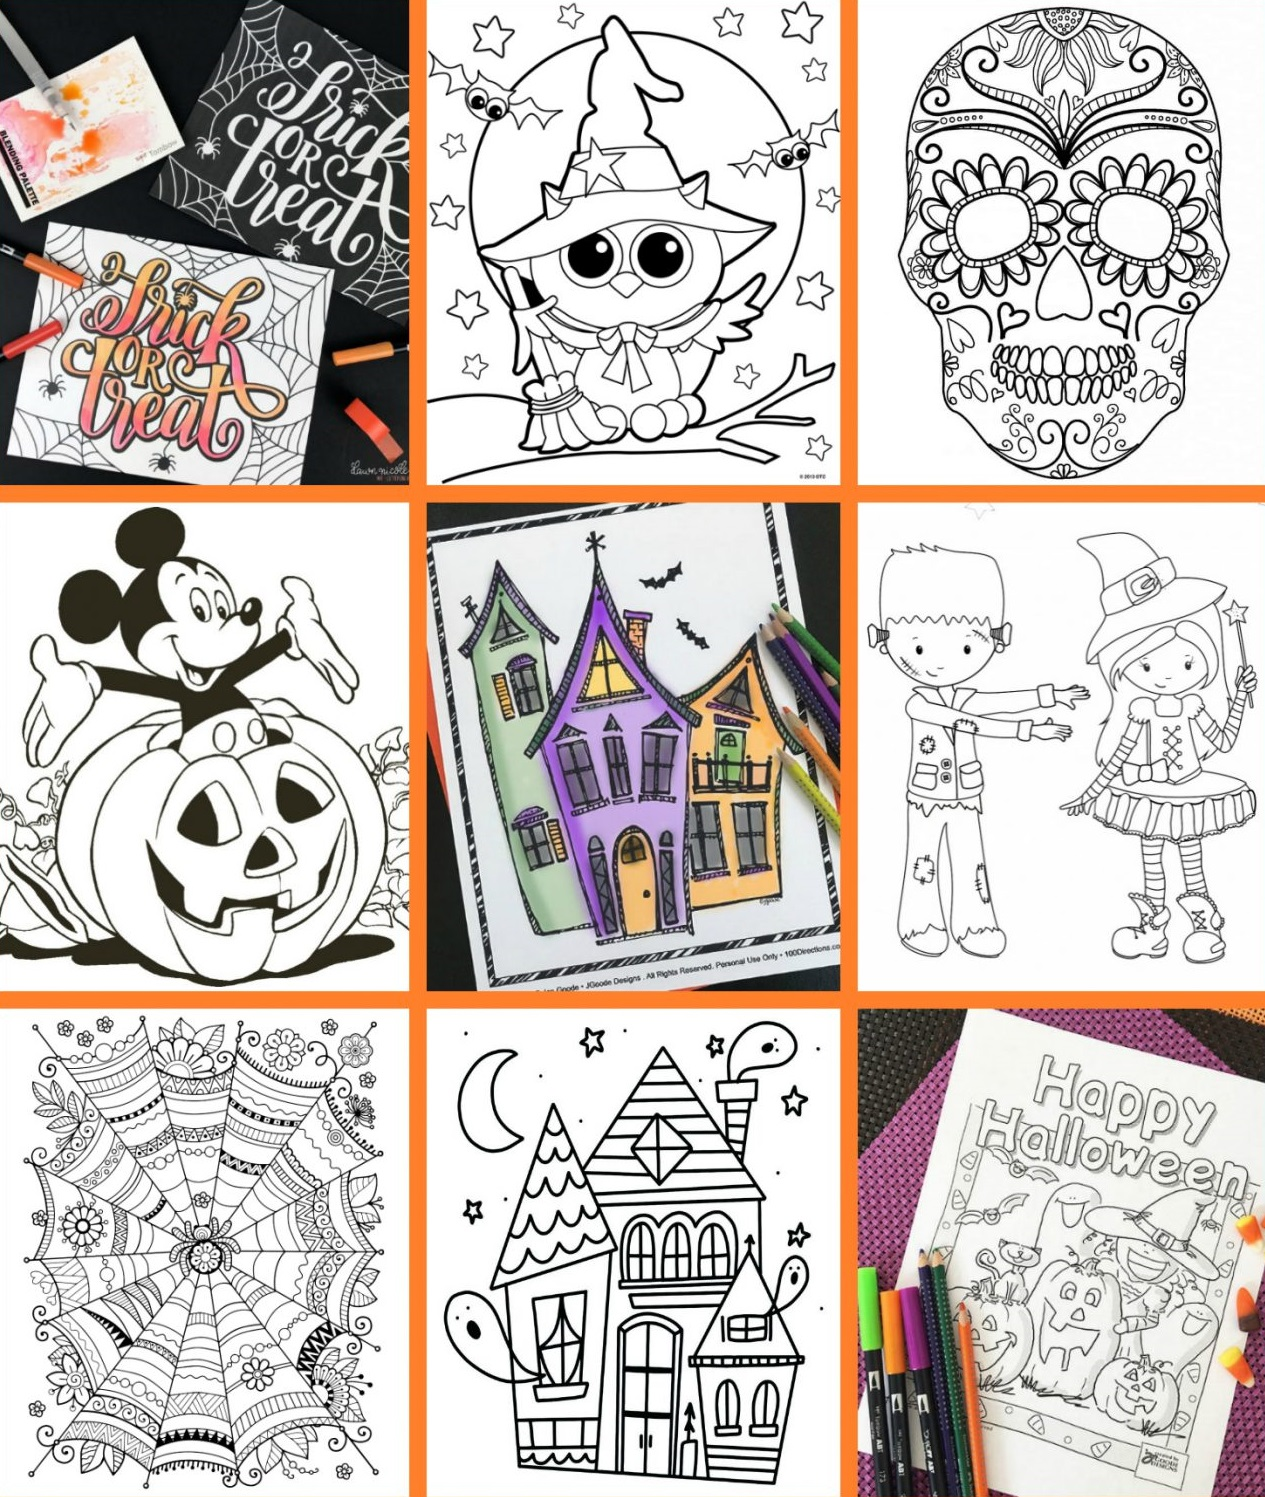 61 Spooky Halloween Free Printables That Will Put You In